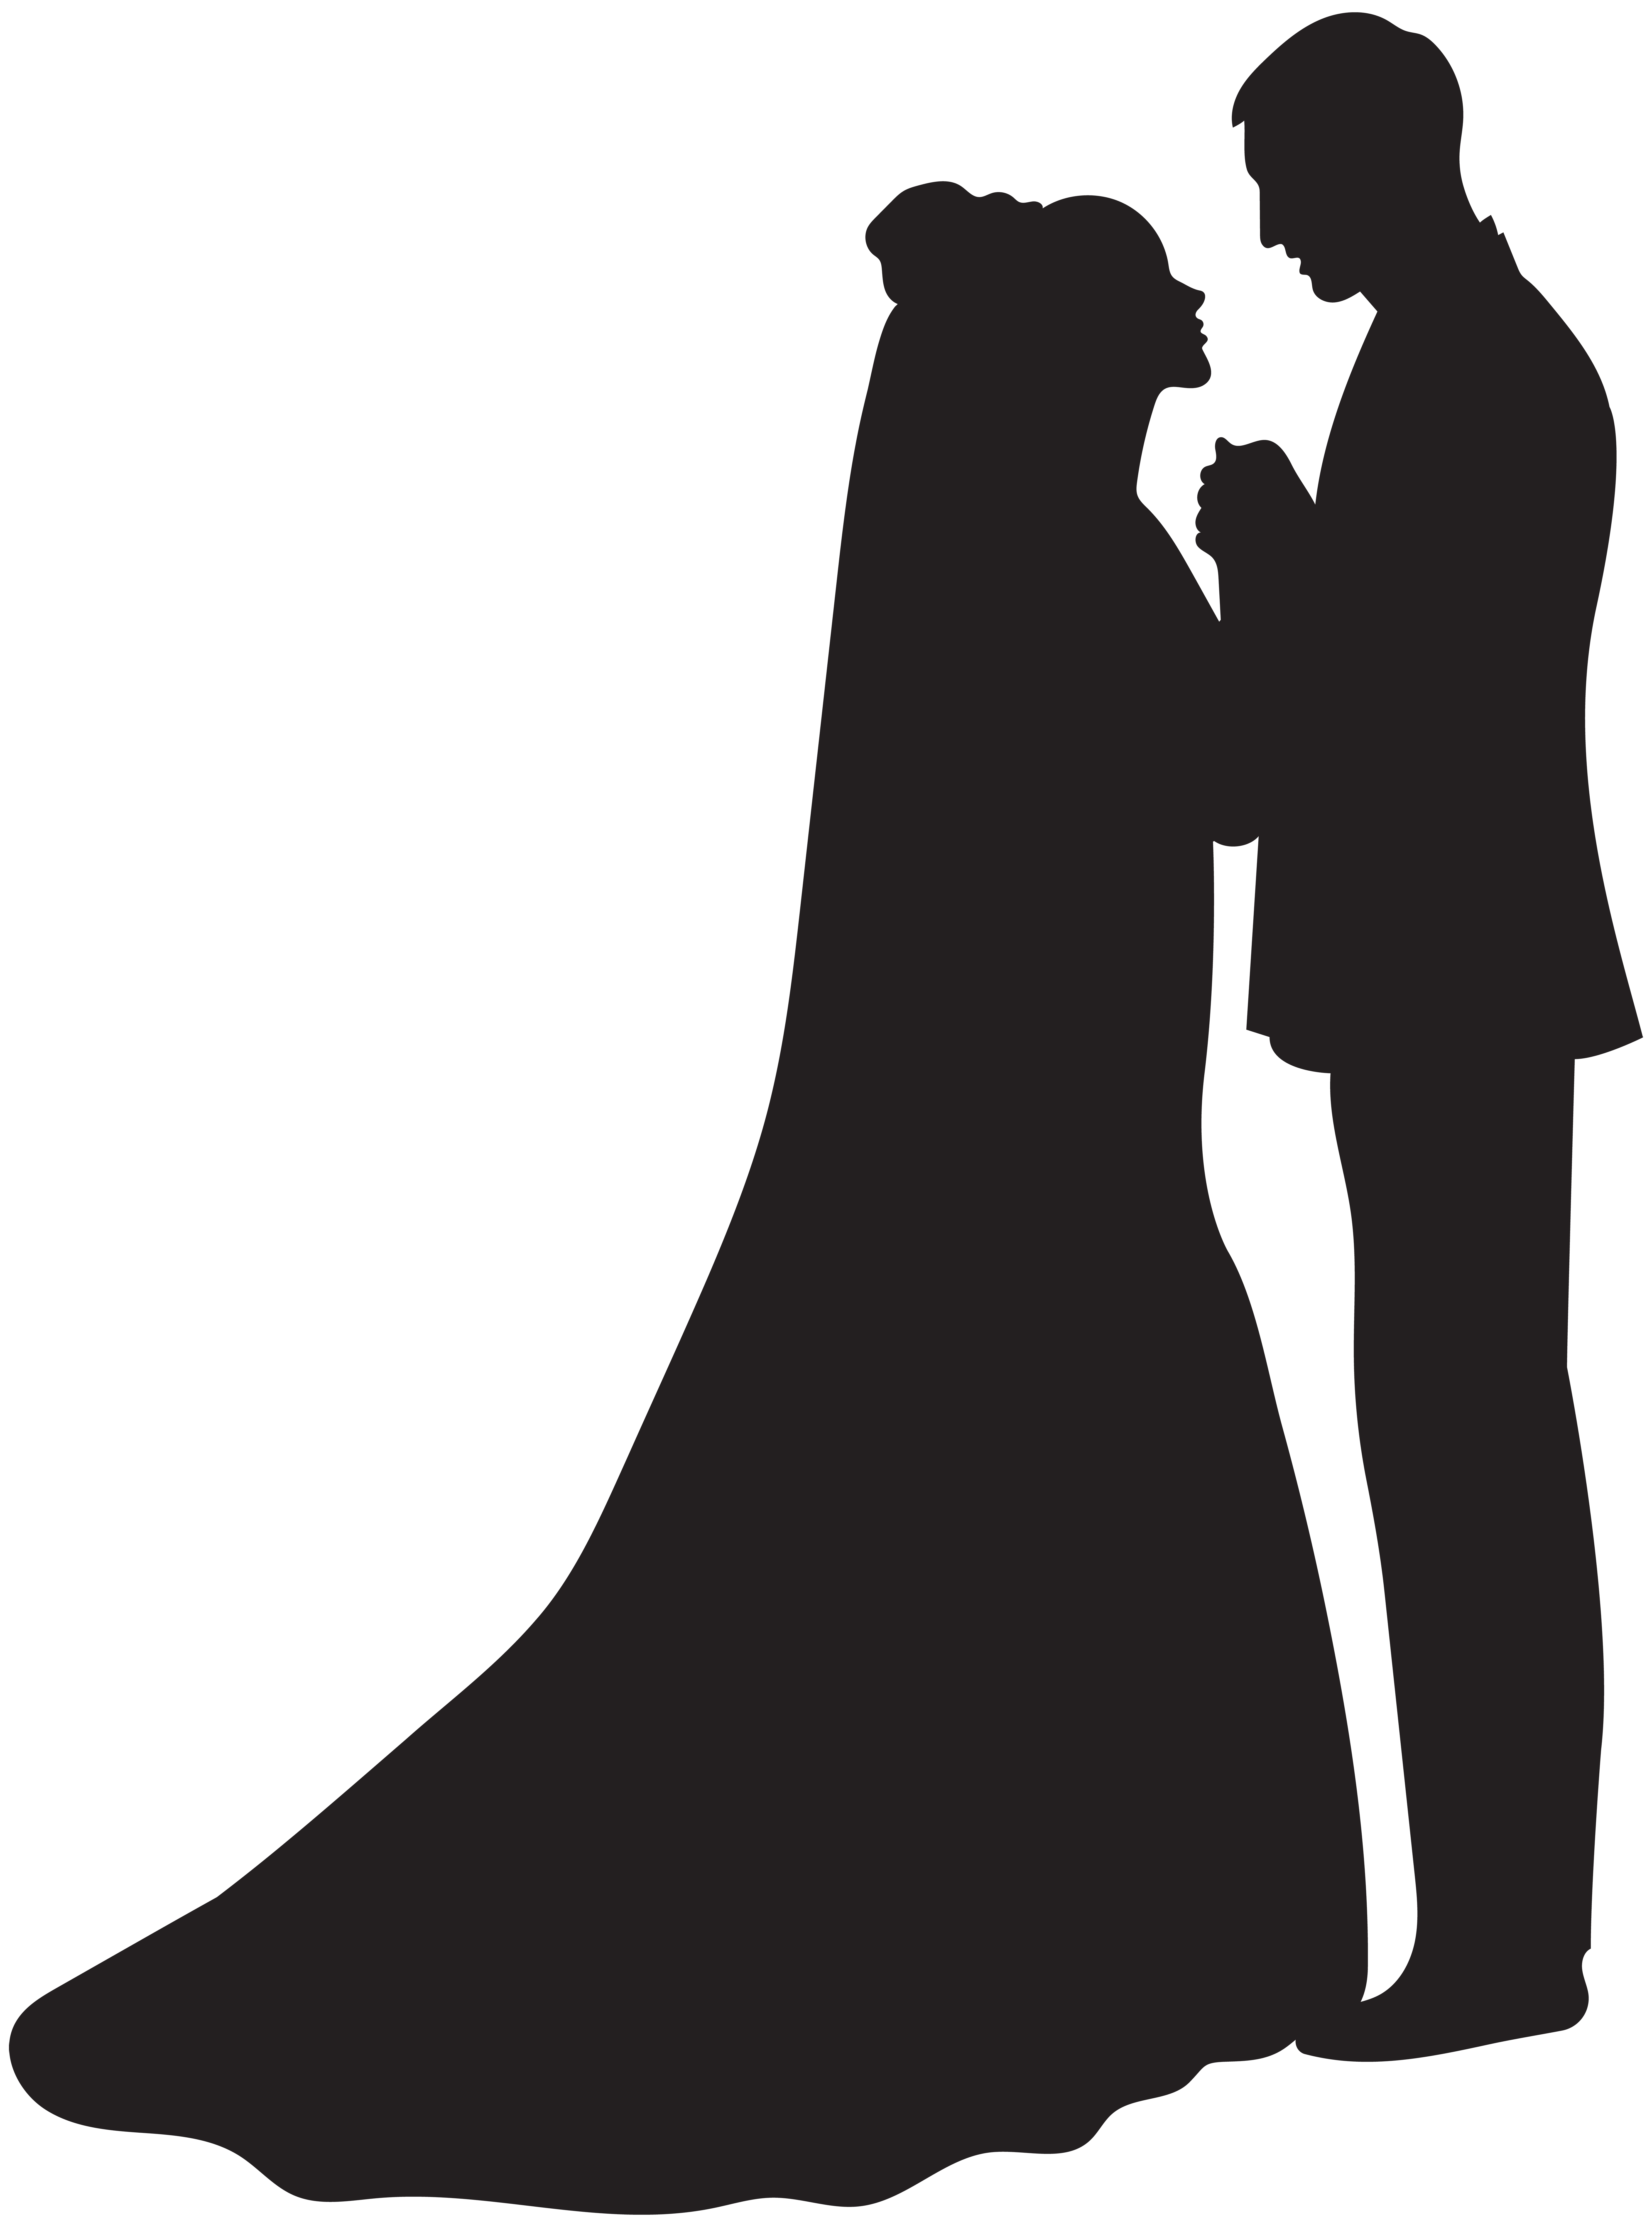 Bride and groom silhouette free clipart vector free download Bride and Groom Silhouette PNG Clip Art | Gallery Yopriceville ... vector free download